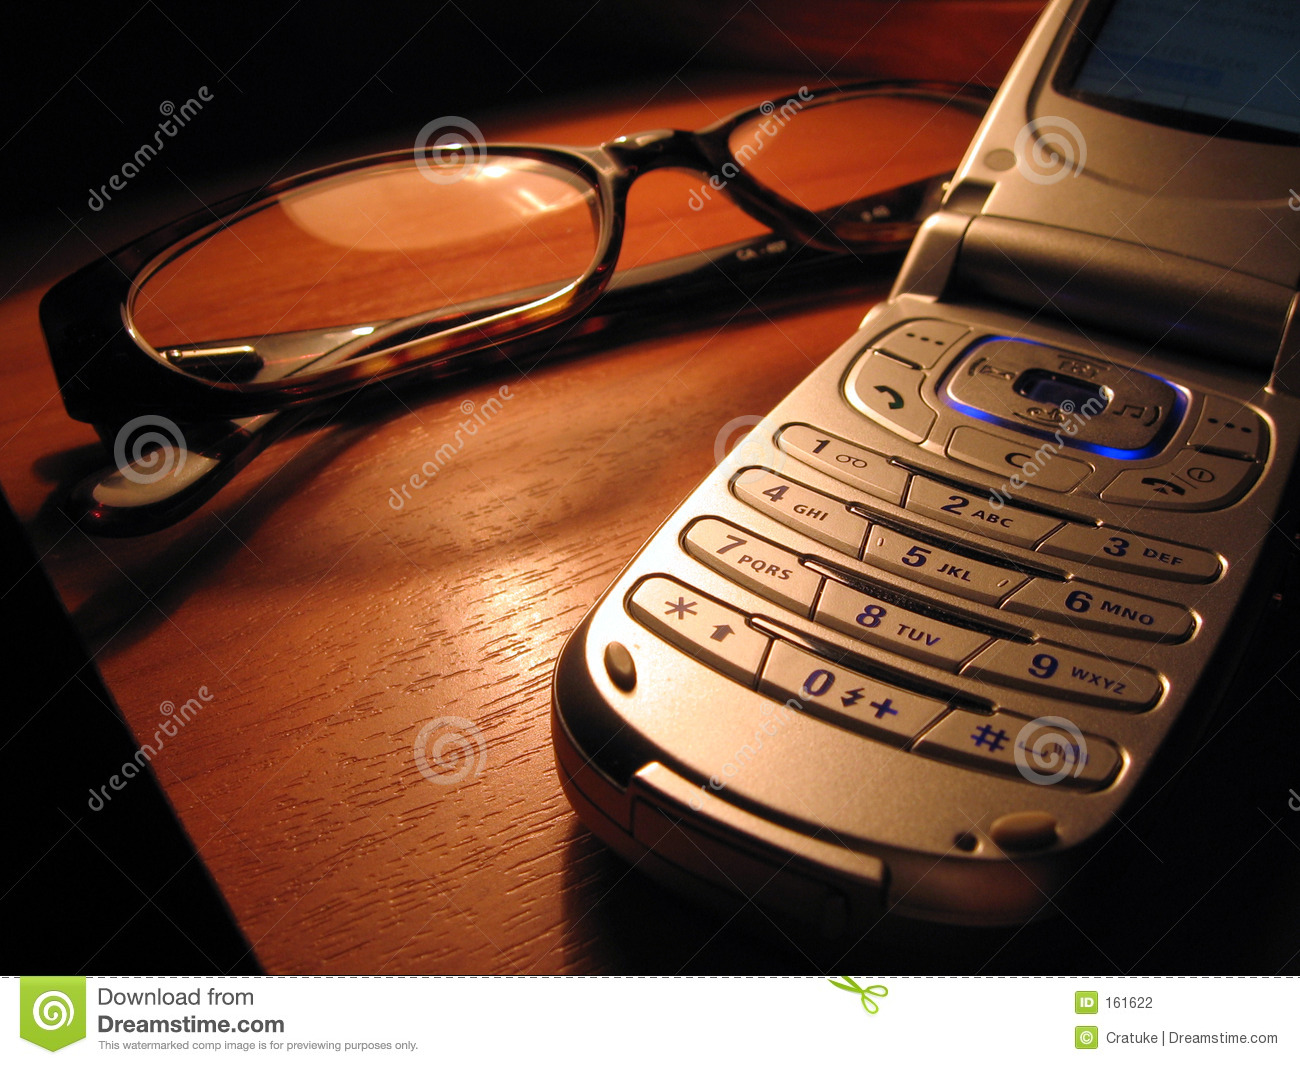 Mobile and glasses on the desk